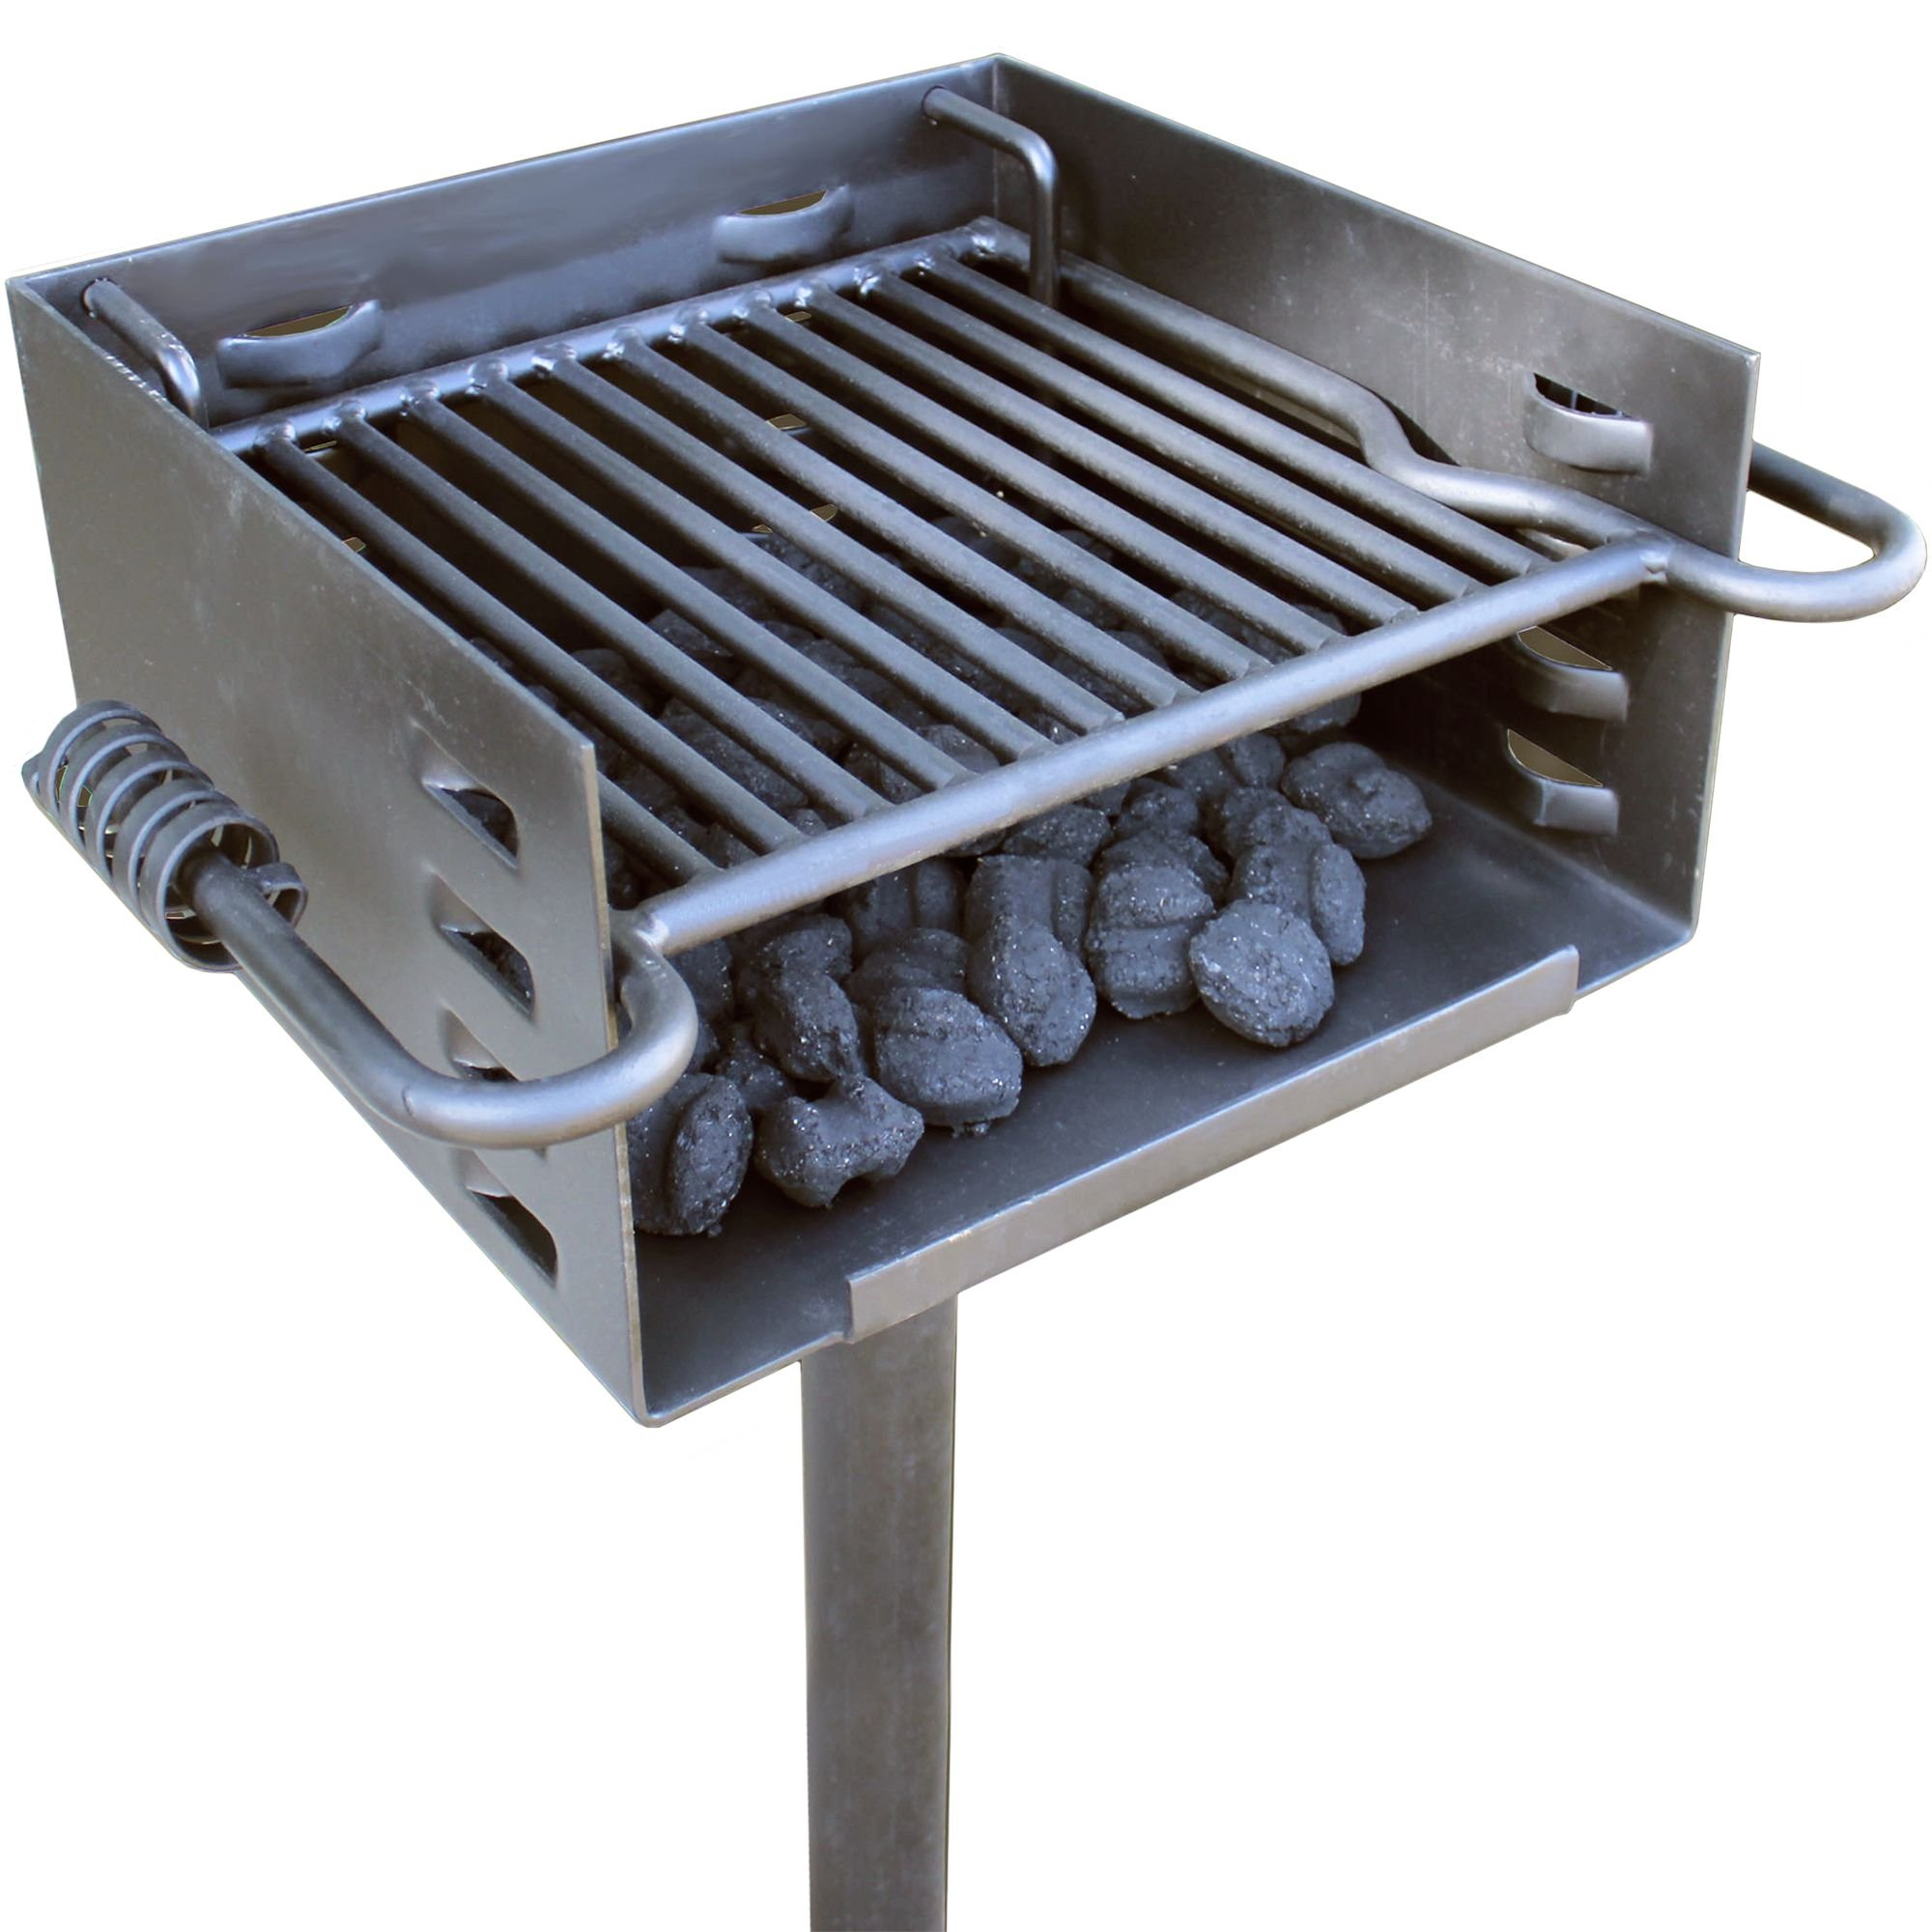 Heavy Duty Park Style Charcoal Grill by Titan Attachments